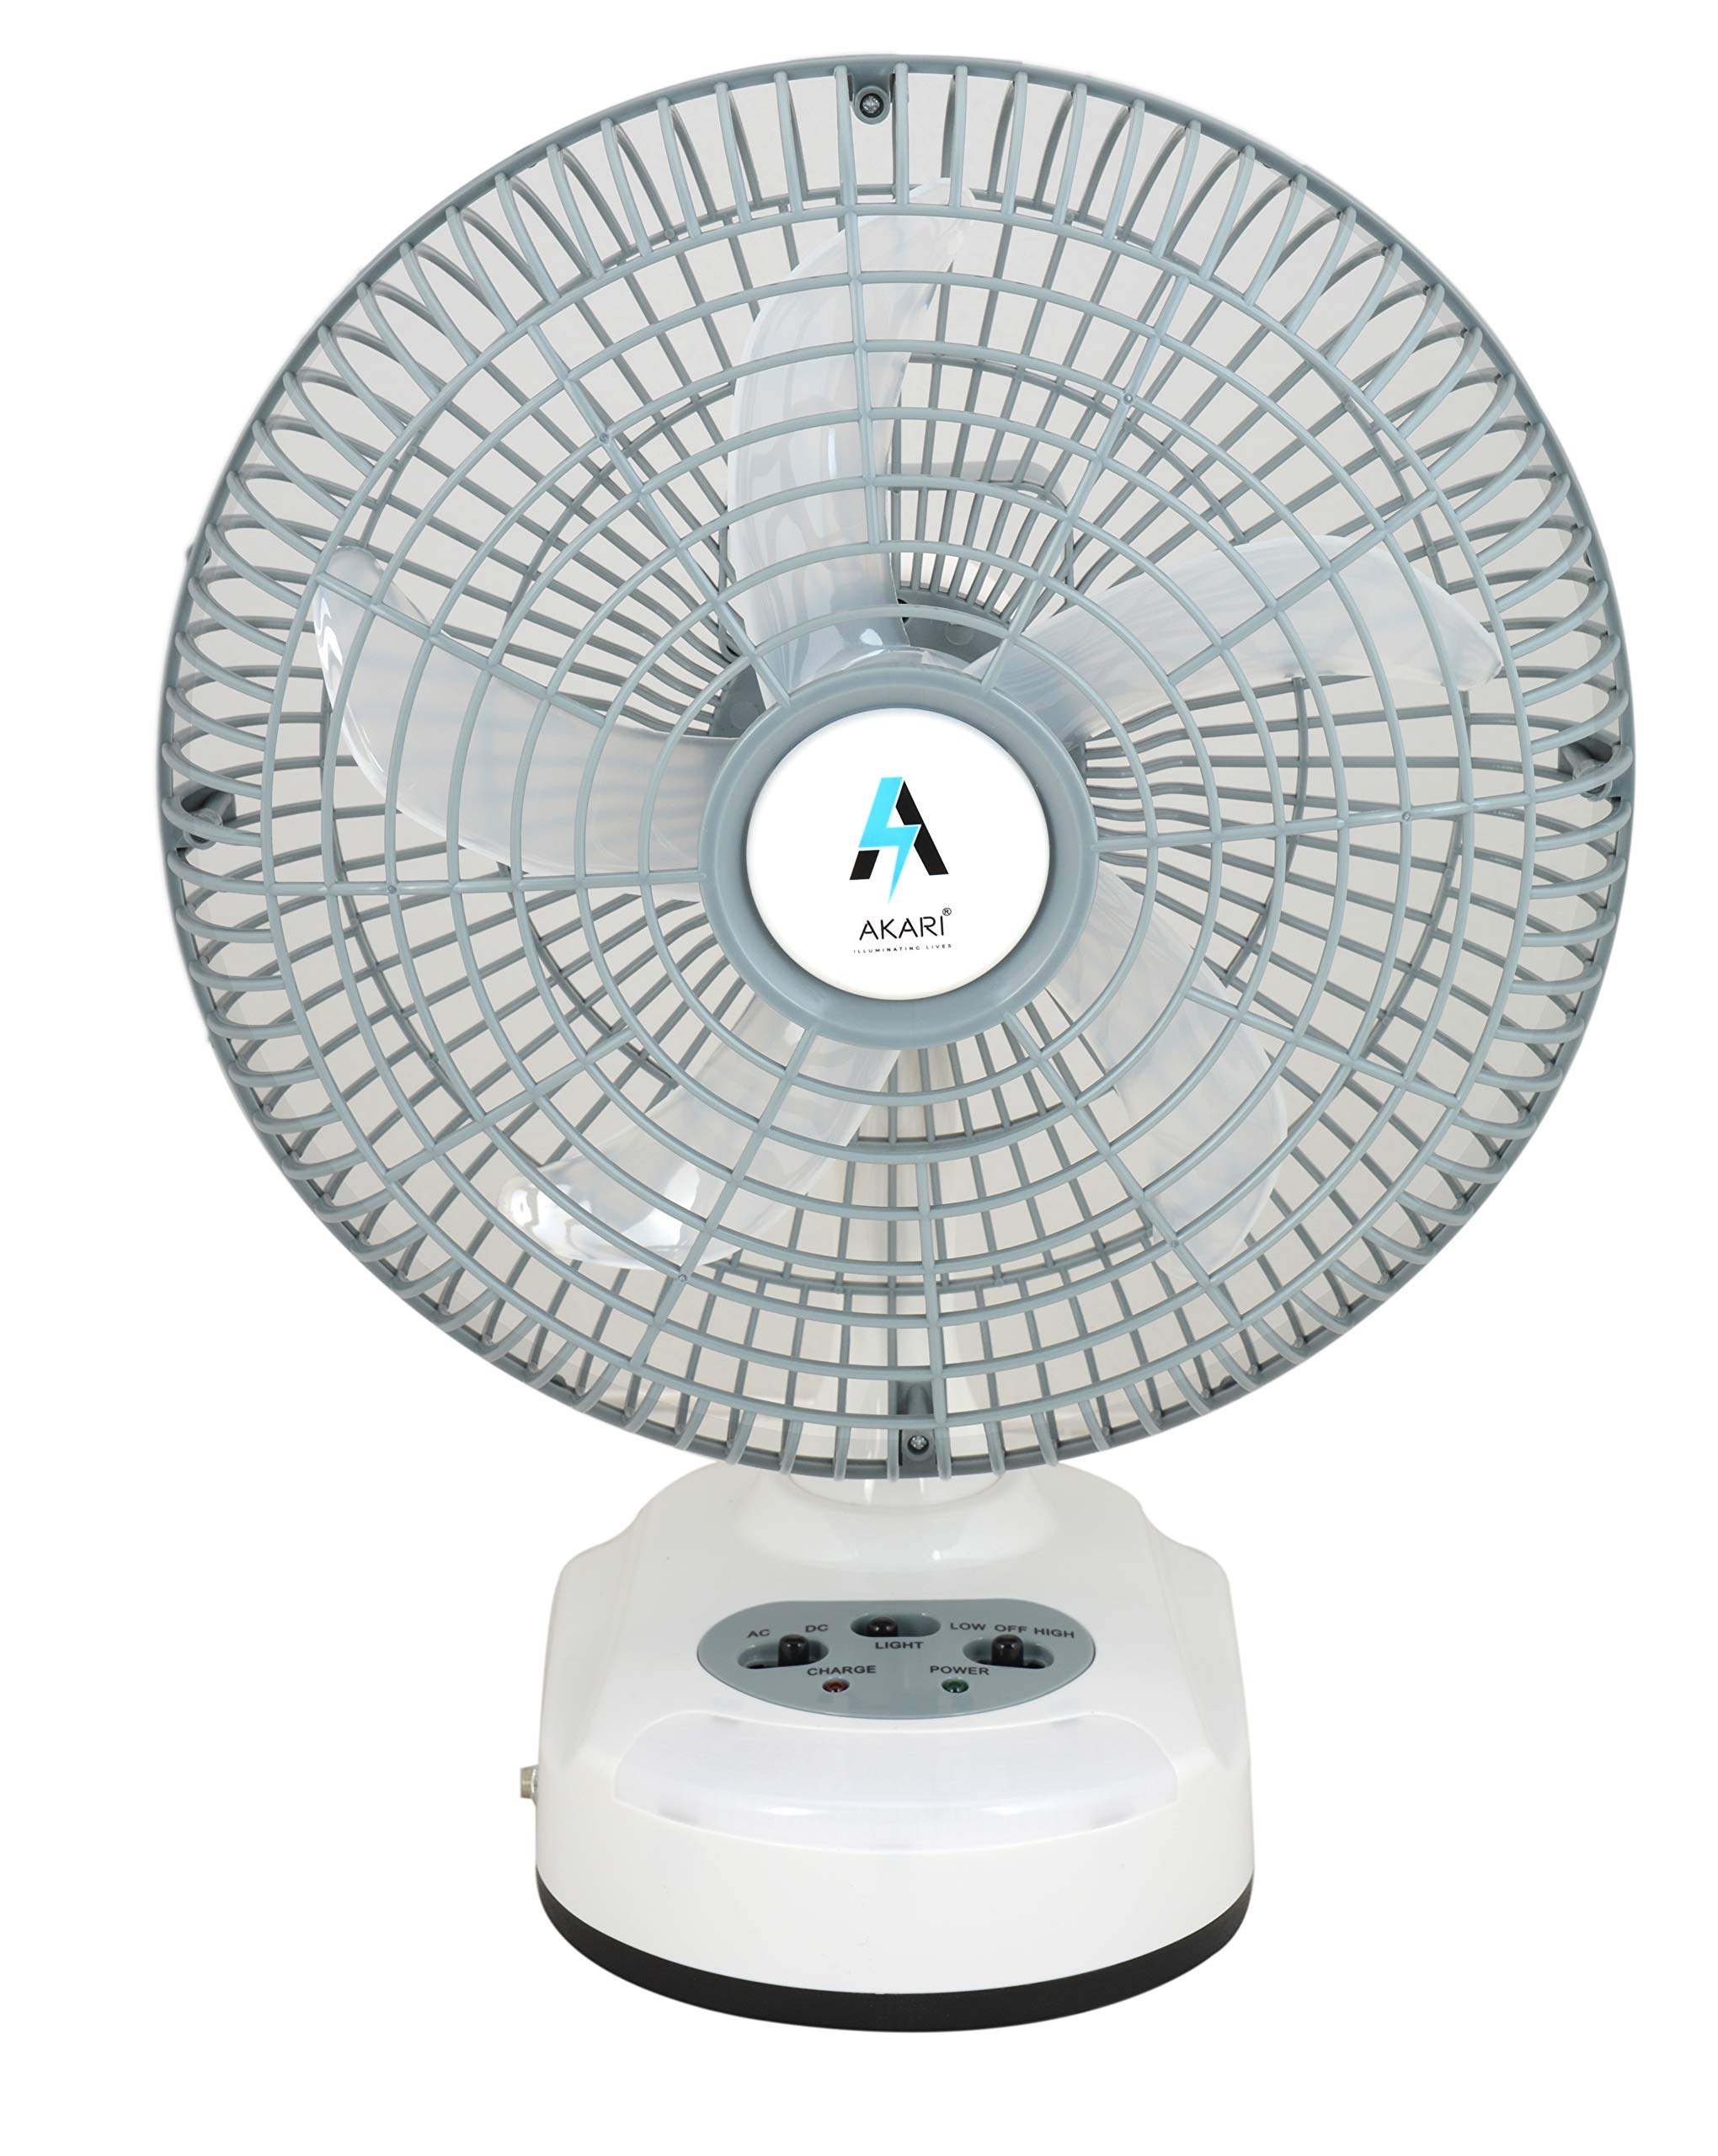 Akari Ak 8010 10 Inch Table Fan With Ac Dc Facility And Emergency